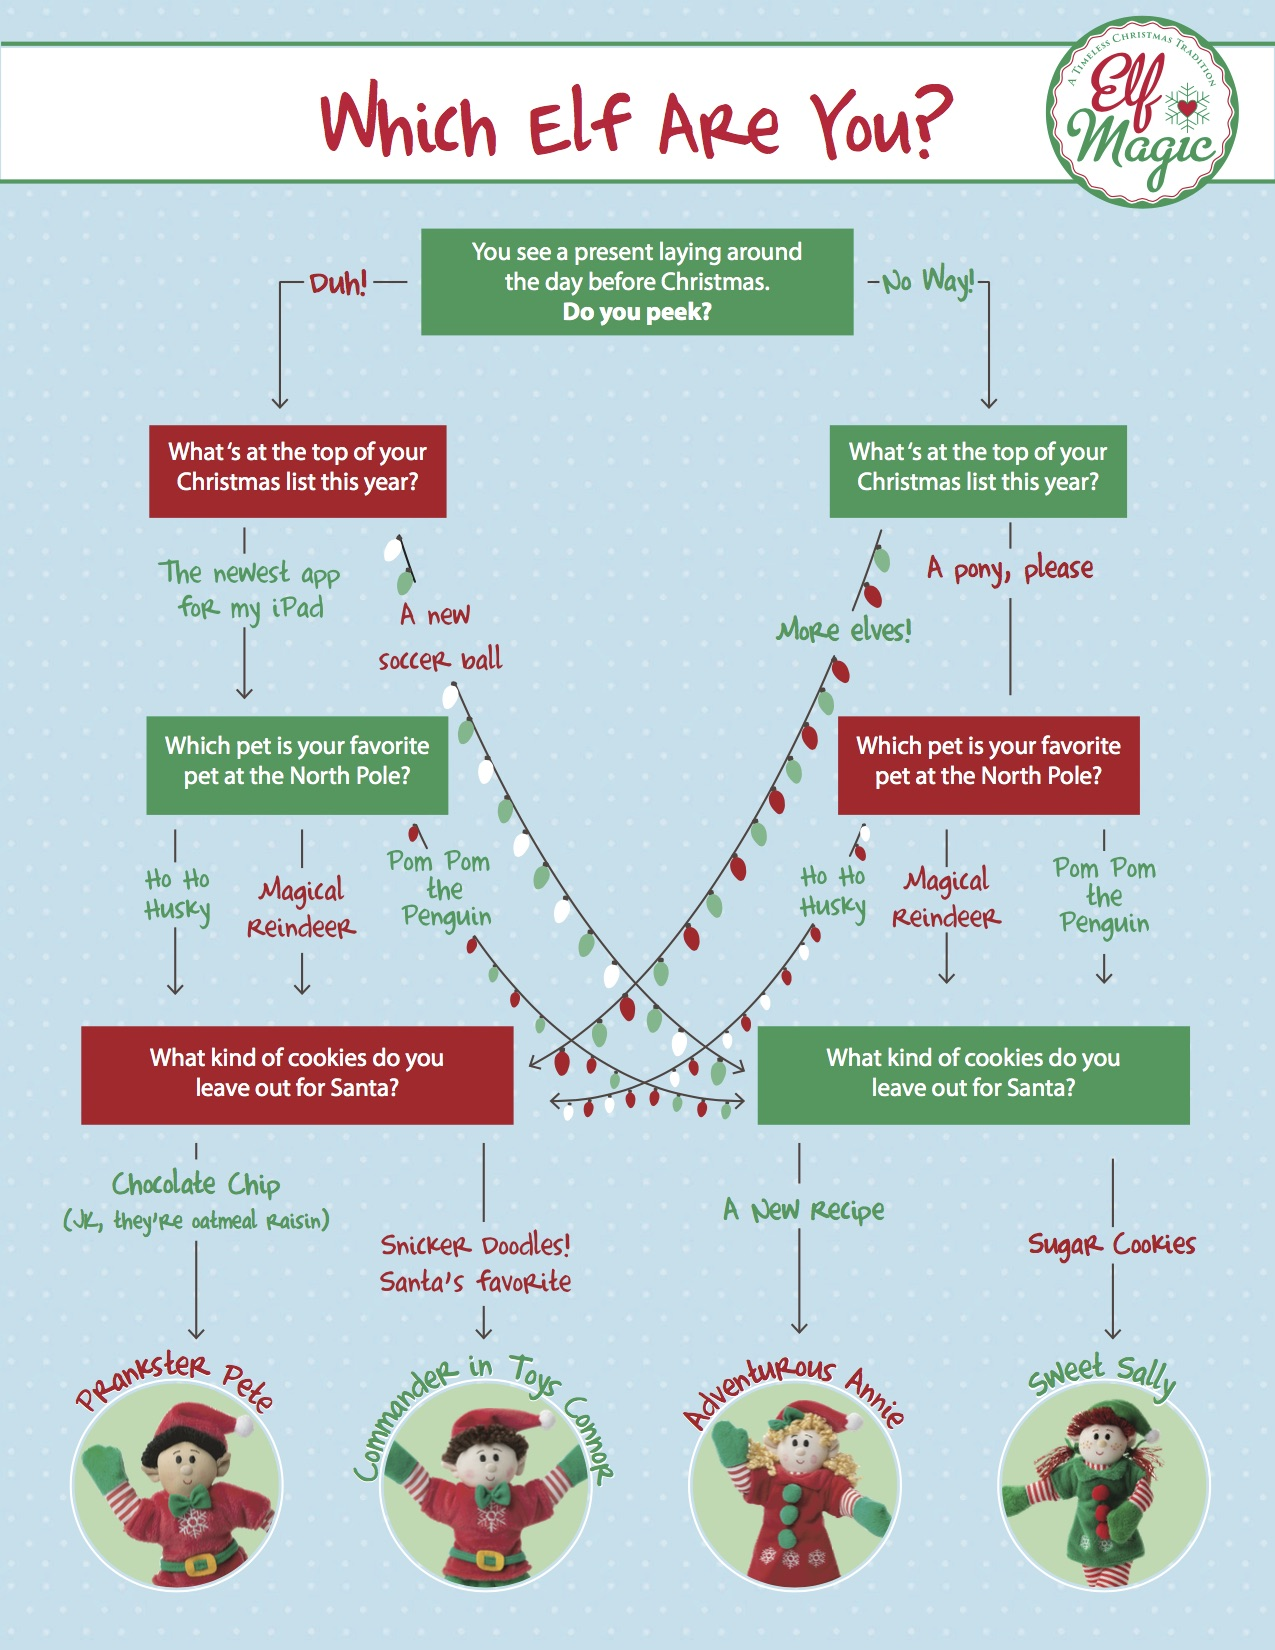 elf quiz personality magic questions which elves